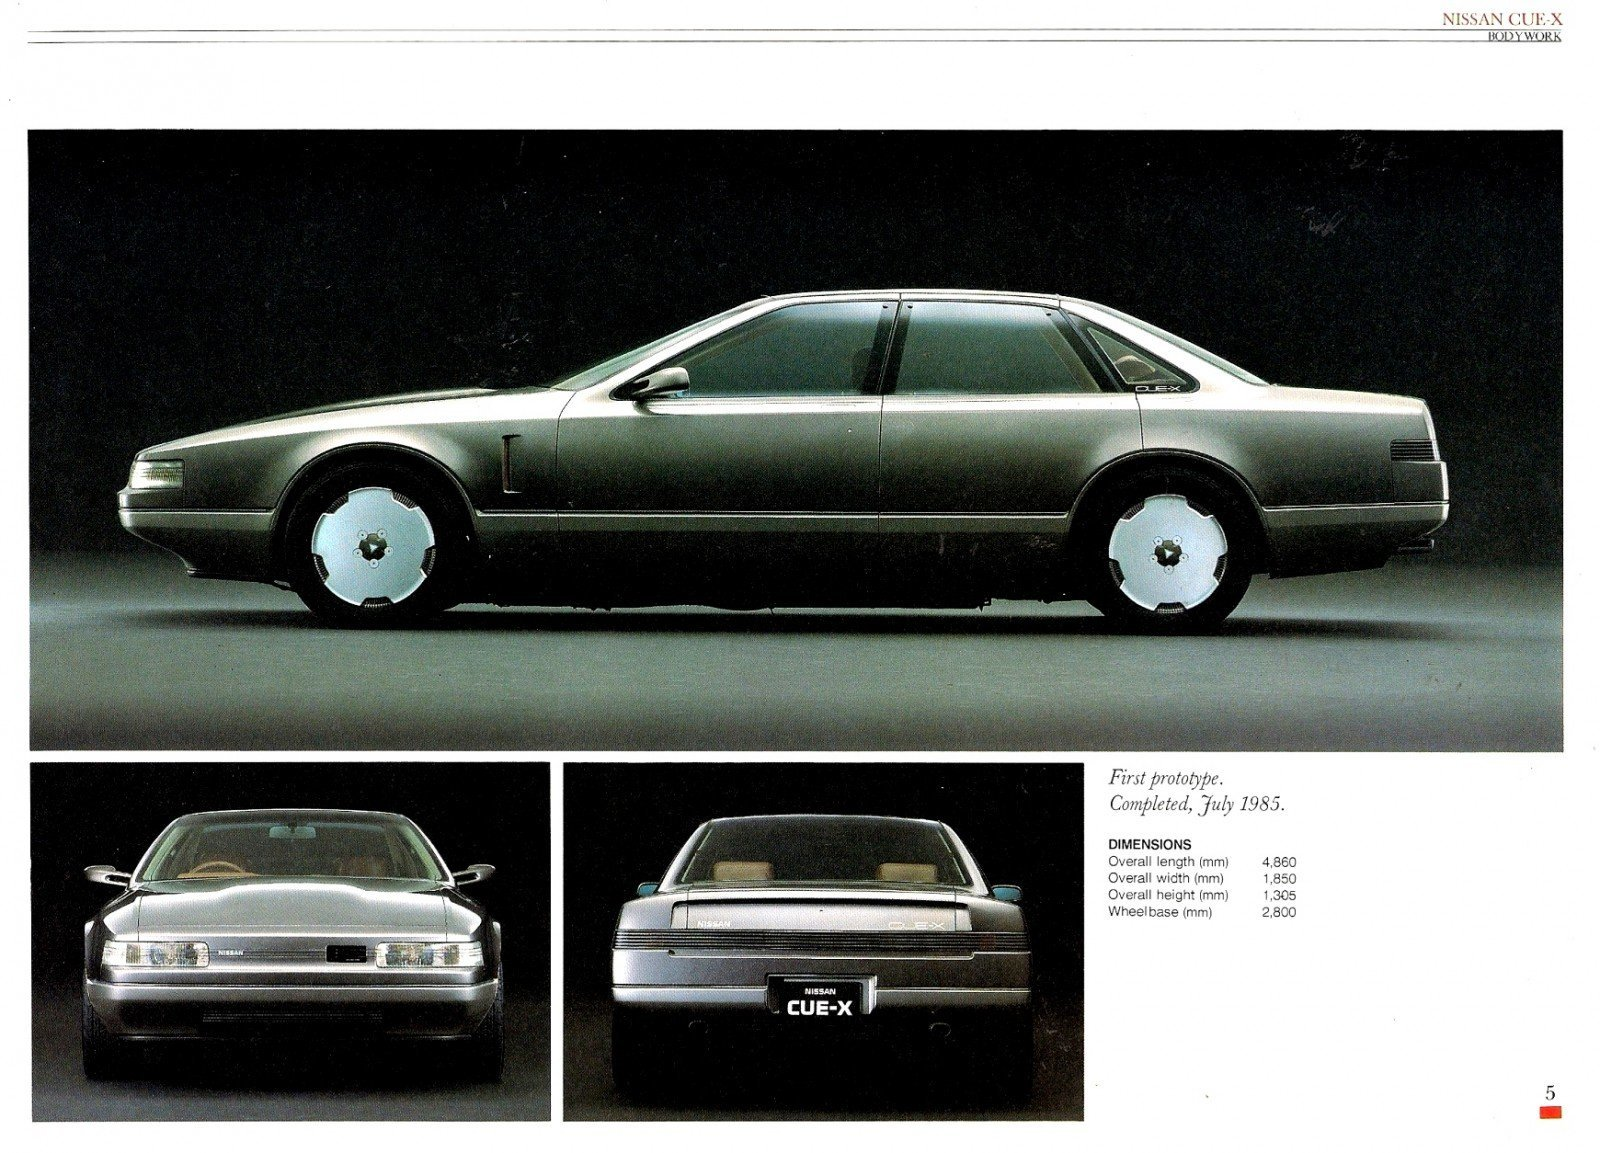 Concept Flashback - 1985 Nissan Cue-X Inspired Original Infiniti Q45 Flagship and Future Q80 3